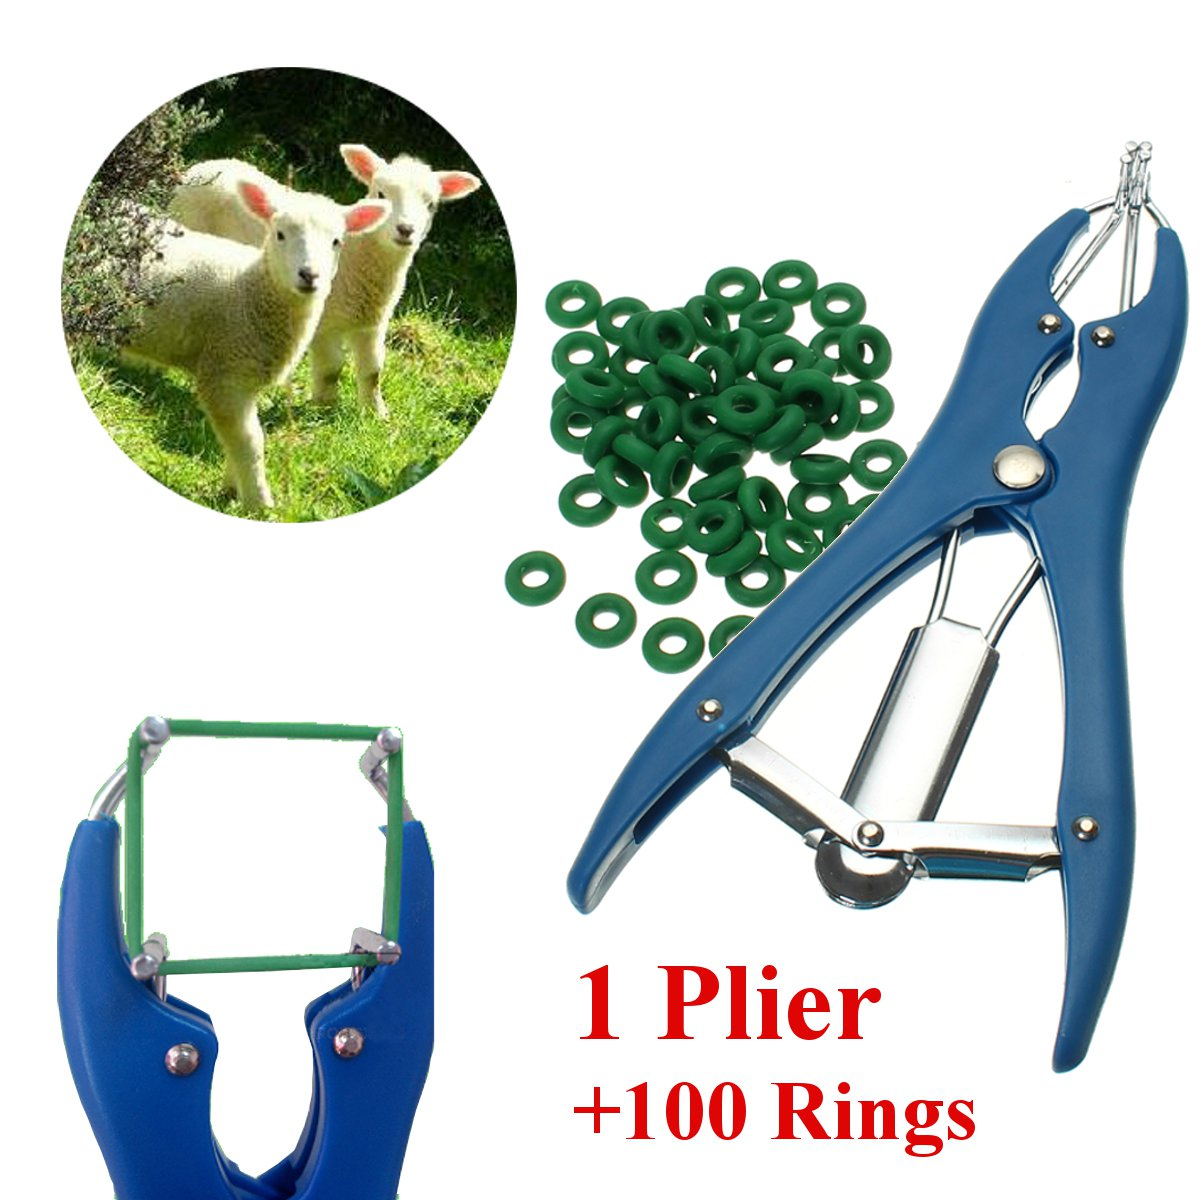 1 Plier for Sheep Castration Banding Tail Applicator Marking Farm+100 Rings